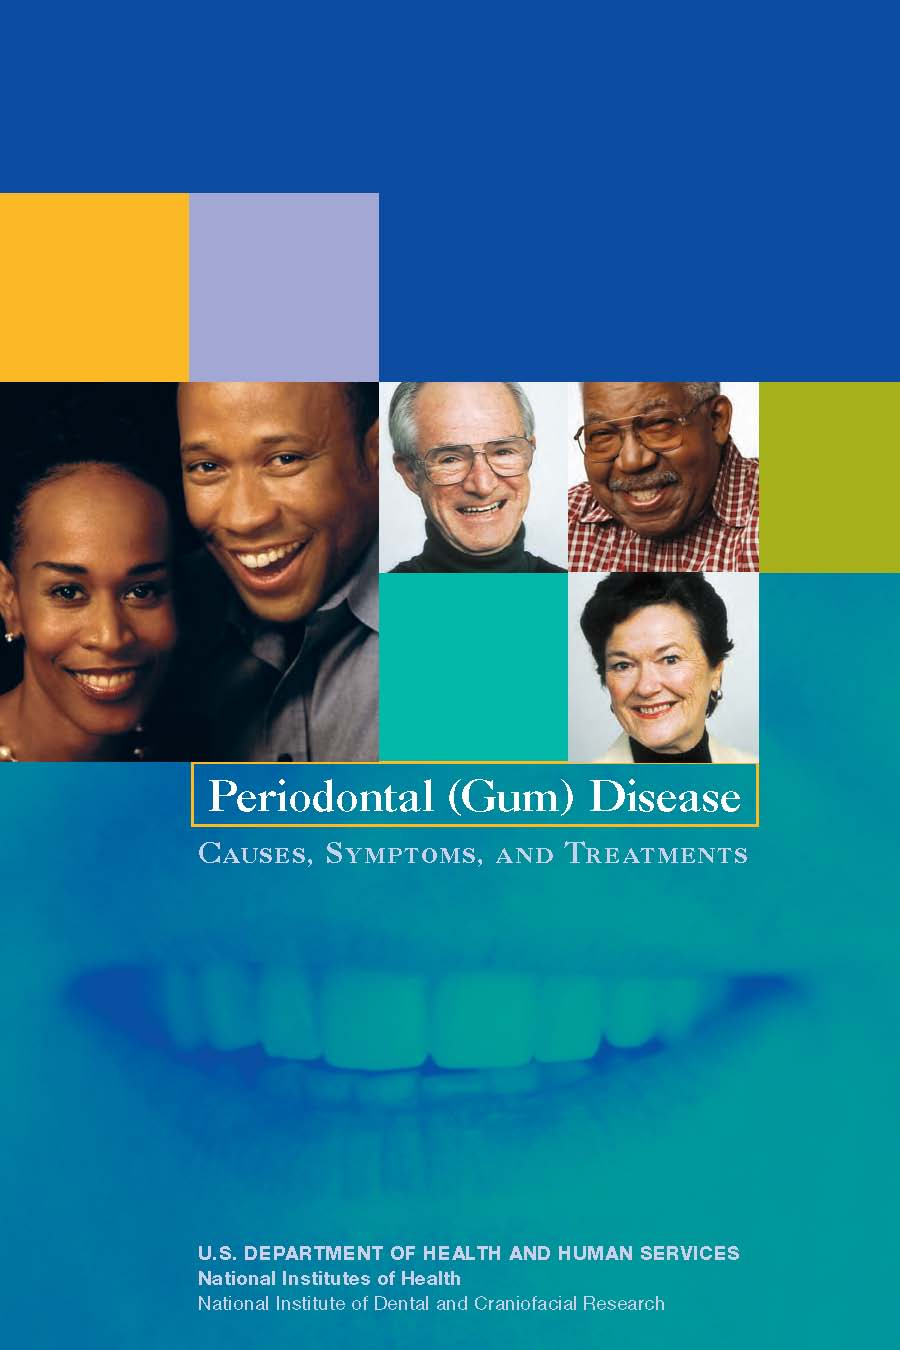 Periodontal (Gum) Disease: Causes, Symptoms and Treatments